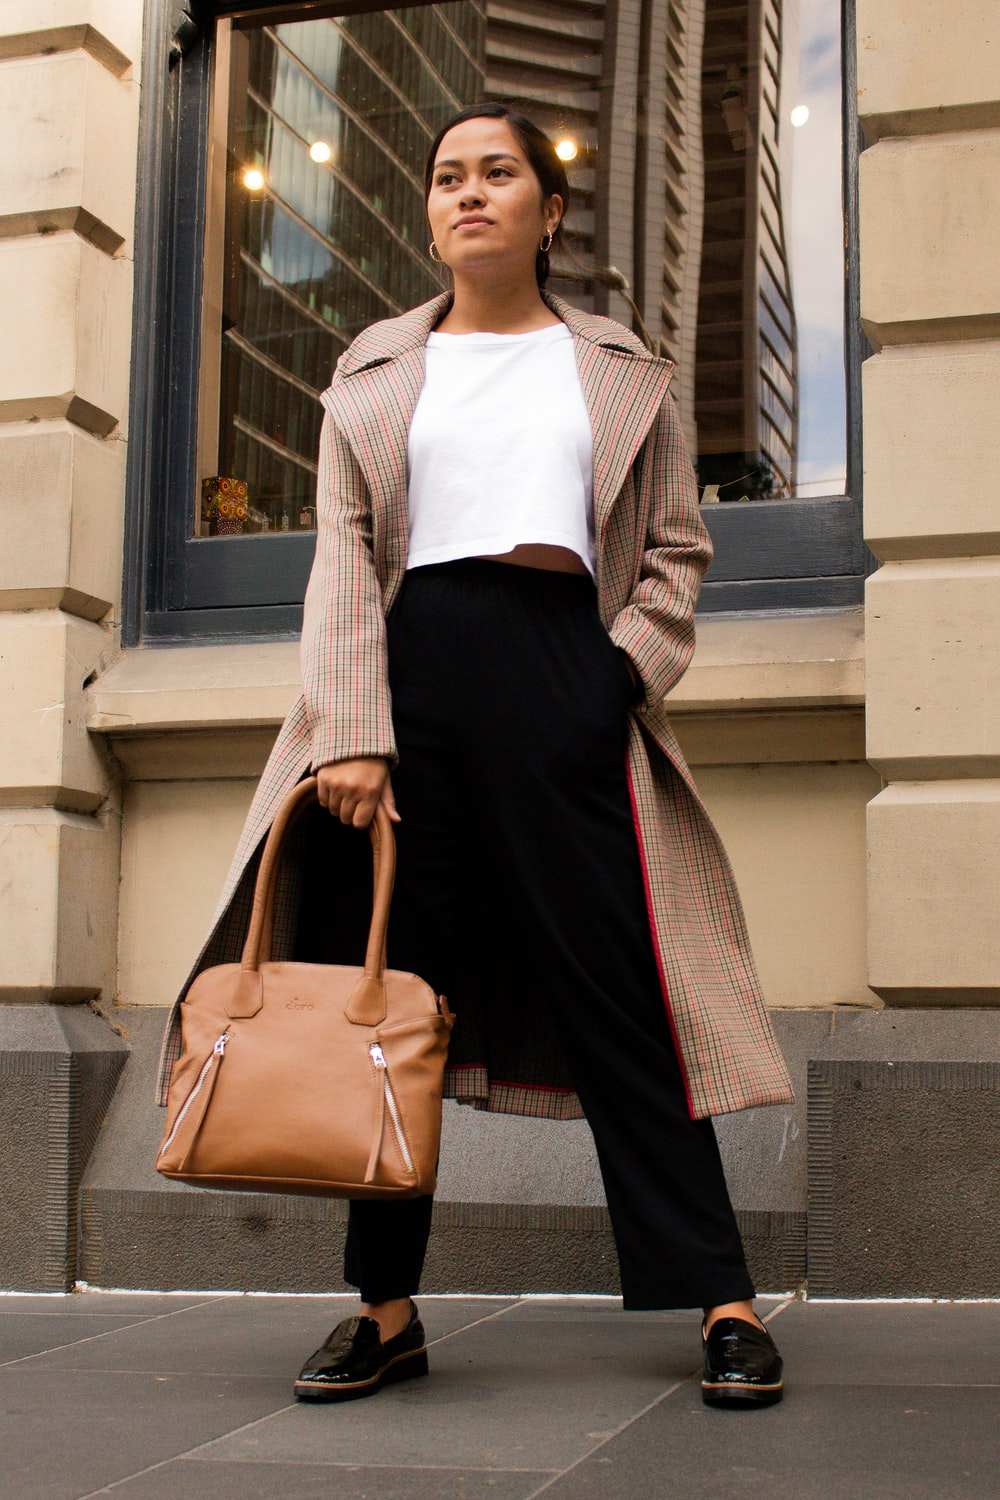 woman in white long sleeve shirt and black skirt holding brown leather handbag